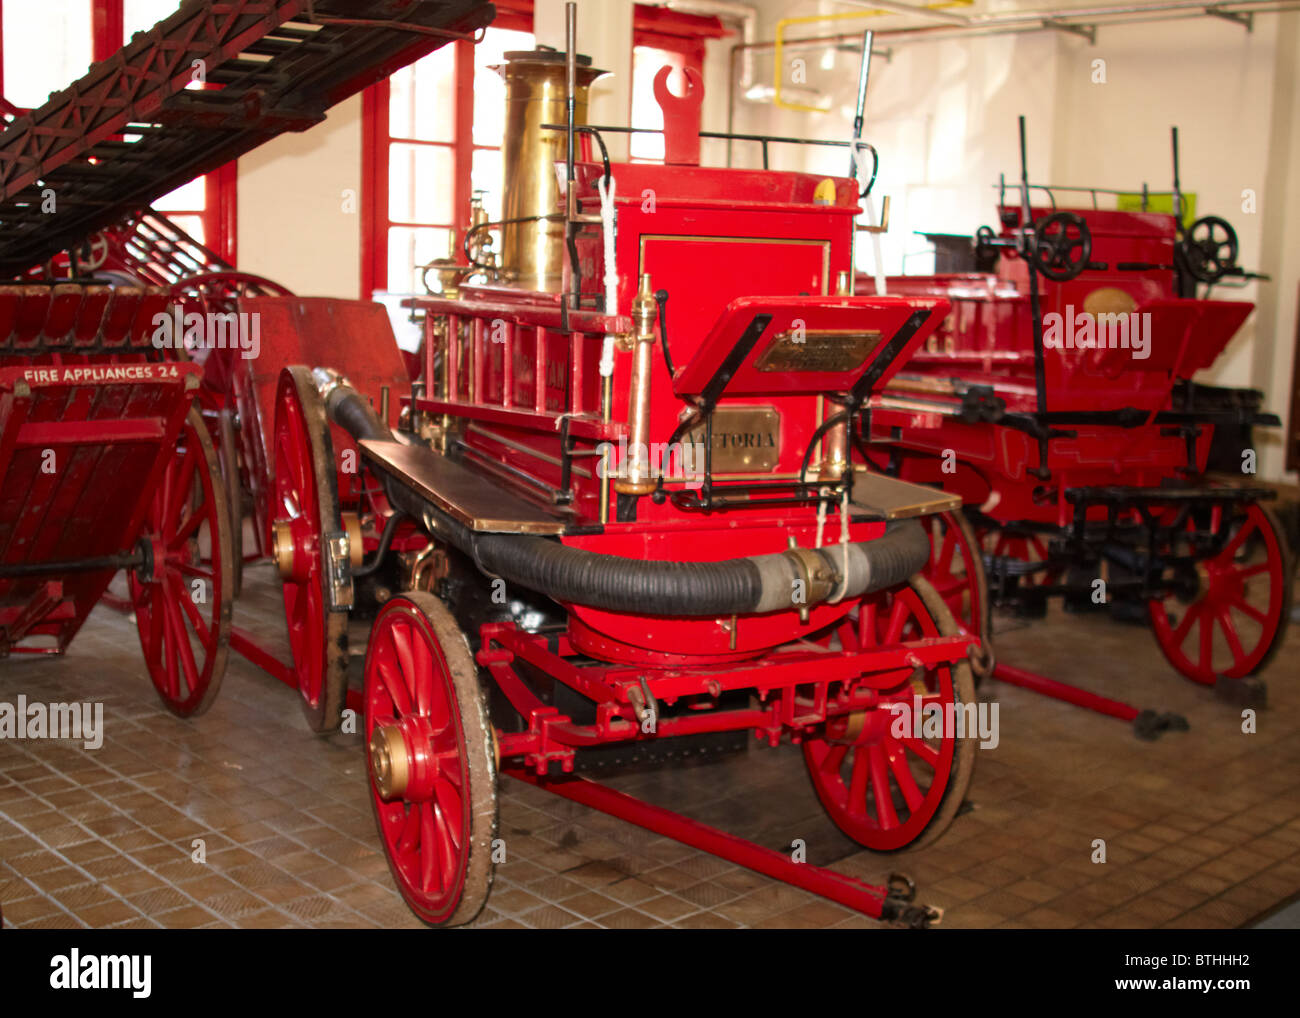 Old fire engines at the London Fire Brigade Museum - Stock Image